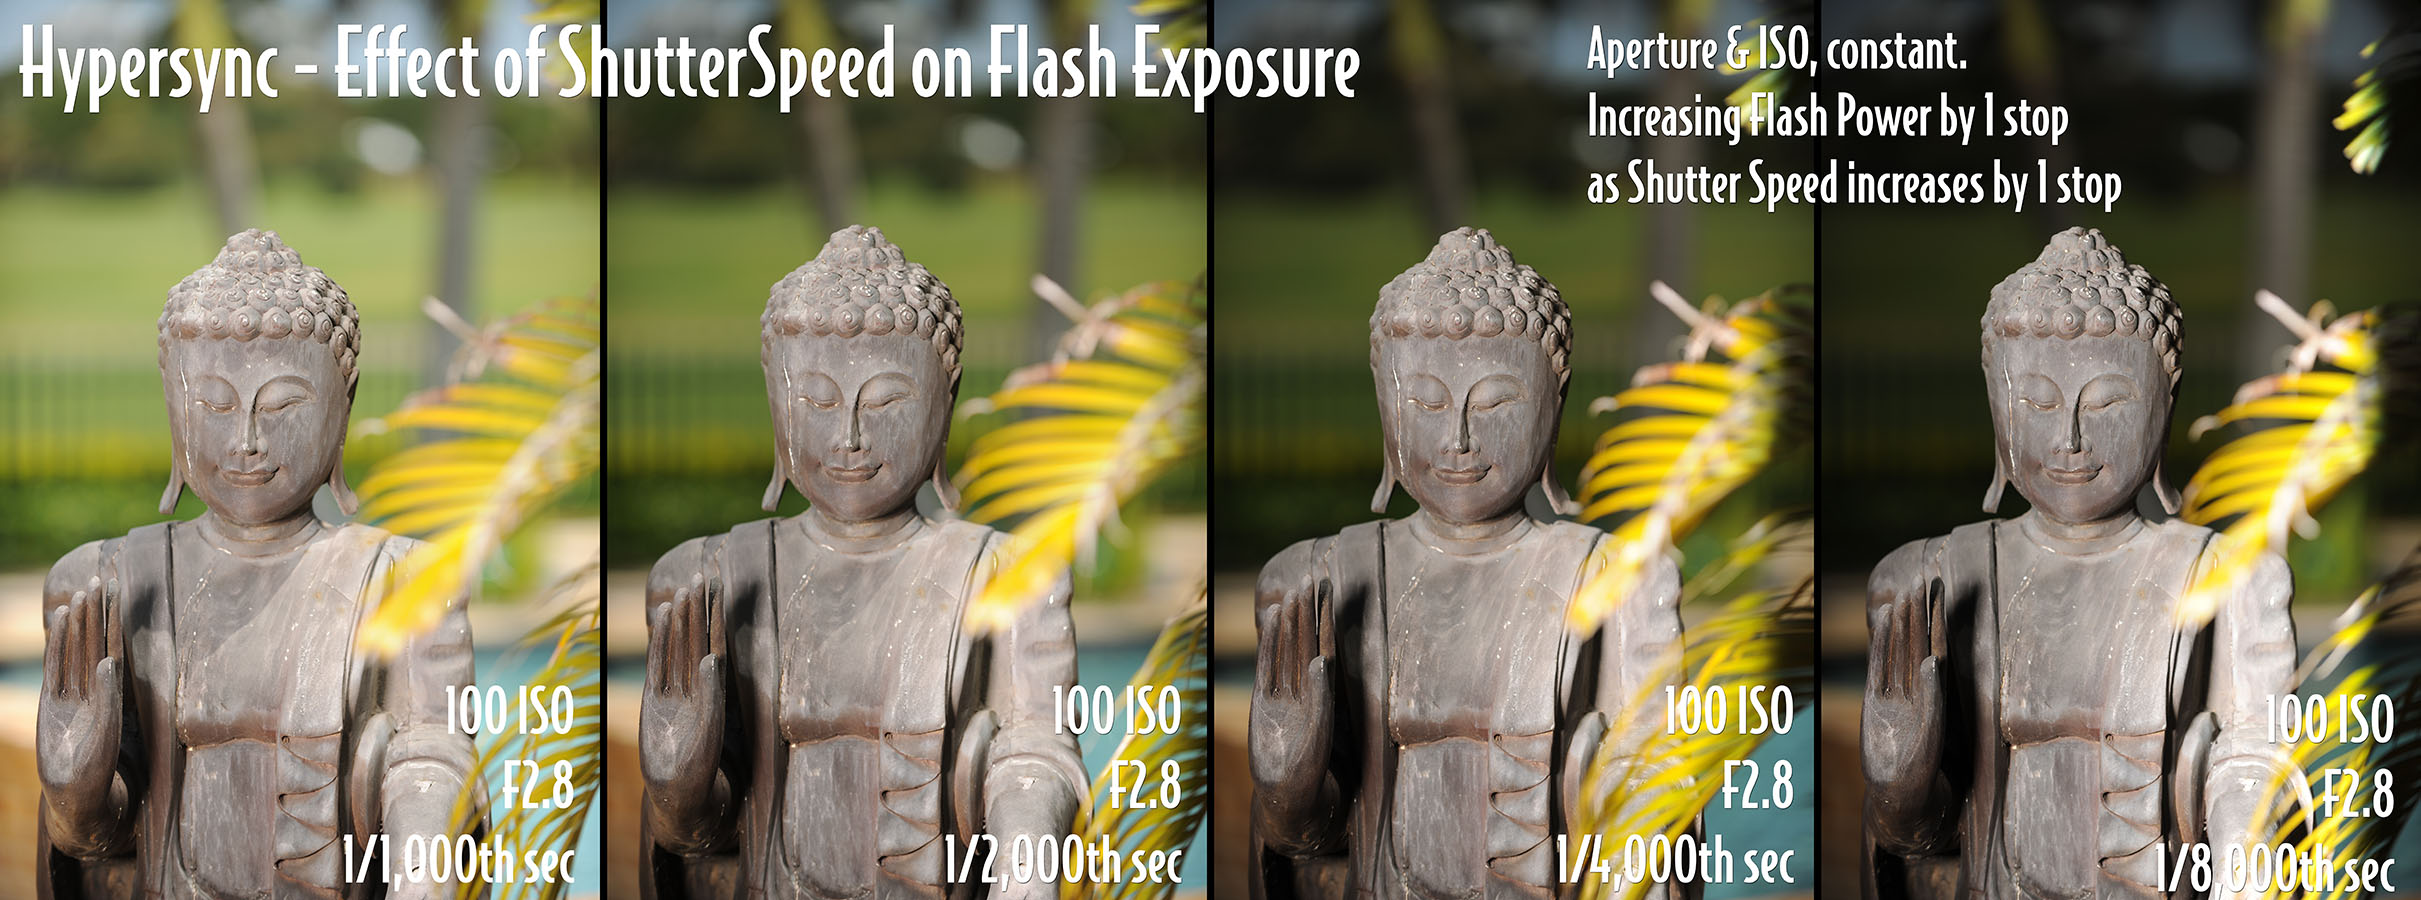 Hypersync - Constant ISO and Aperture, increasing Flash Power with increase in Shutterspeed